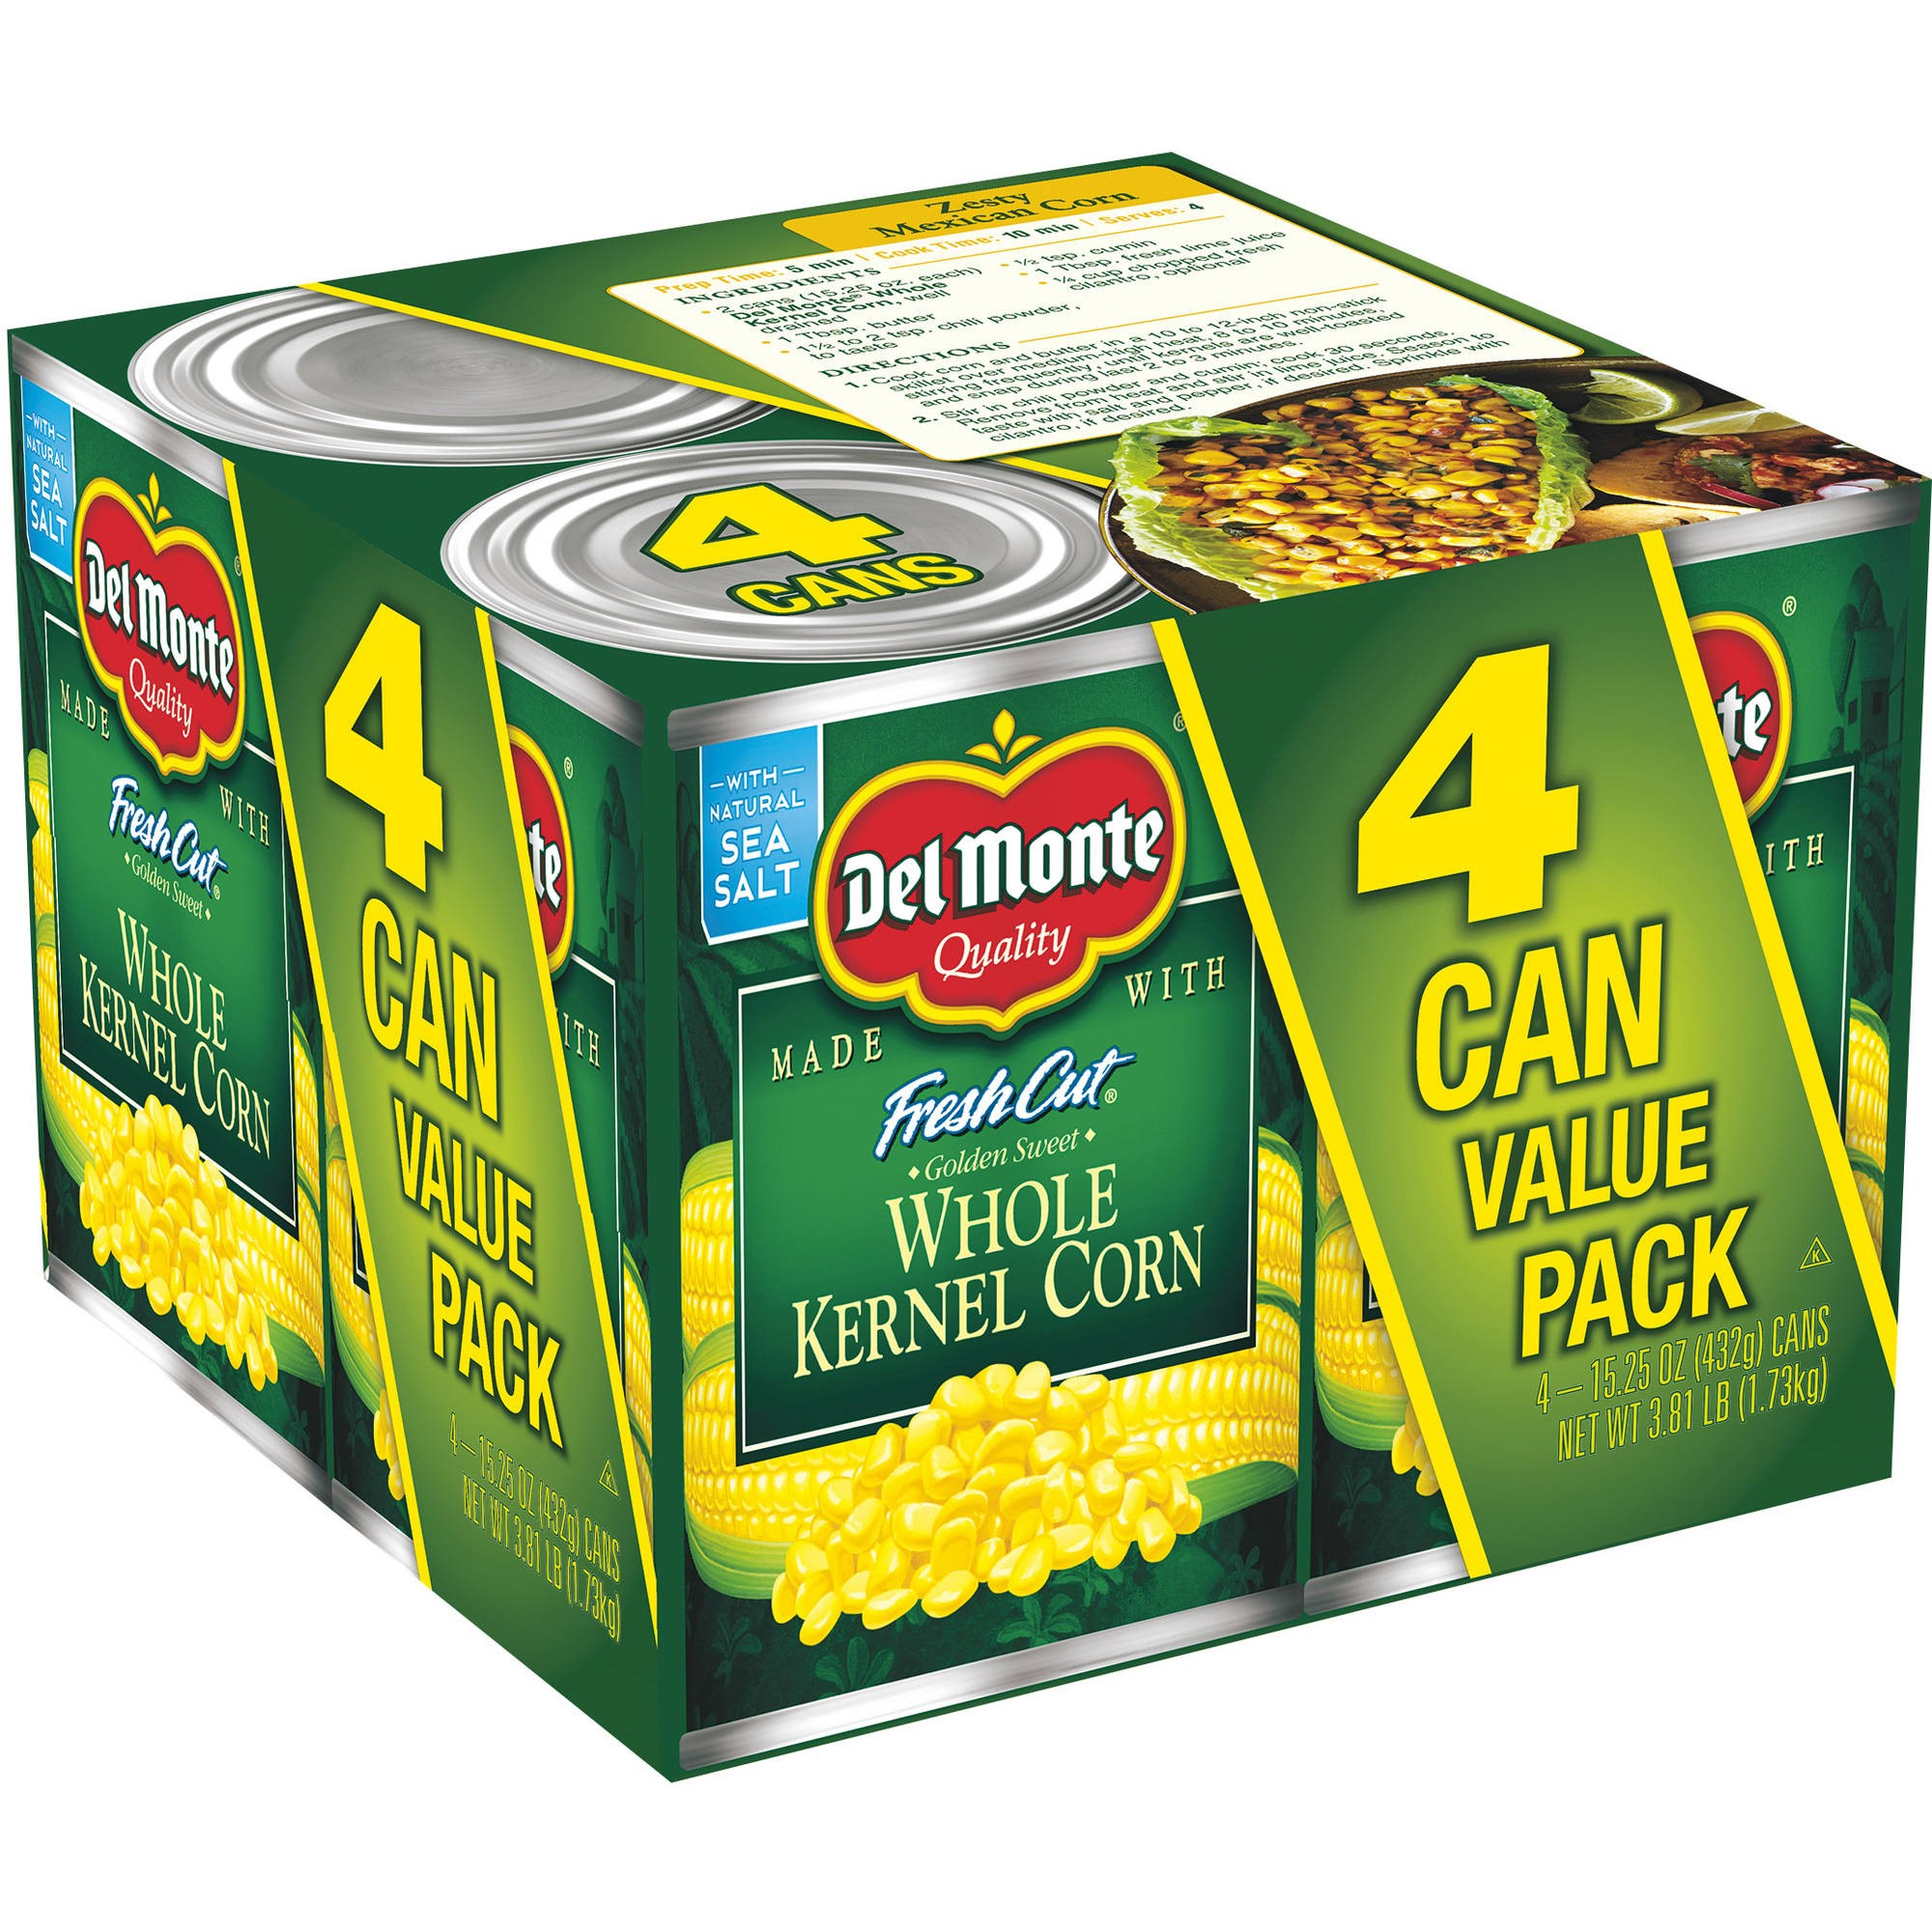 Del Monte Fresh Cut Golden Sweet Whole Kernel Corn, 15.25 oz, 4 Count Box